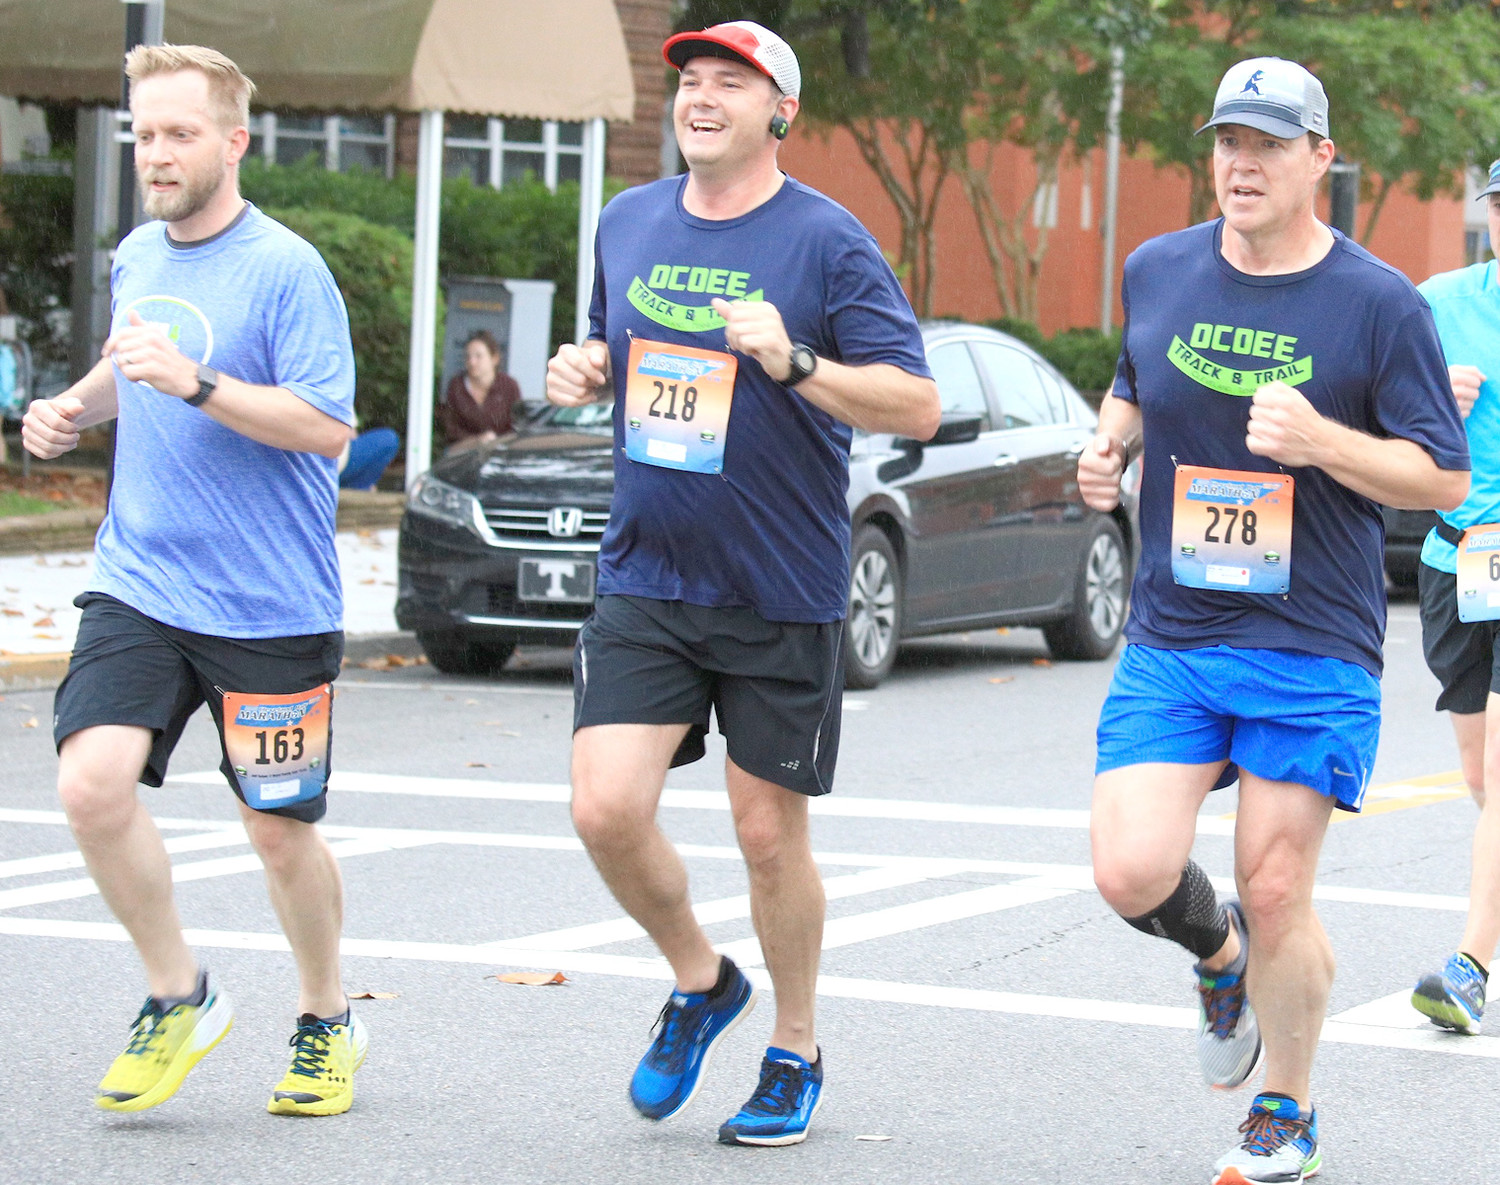 RUNNING WITH FRIENDS is something that Matt Ryerson, right, enjoys. He has run for over 1,050 straight days, many of them with fellow runners Jeff Salyer, left, and Yuri Davis, center.